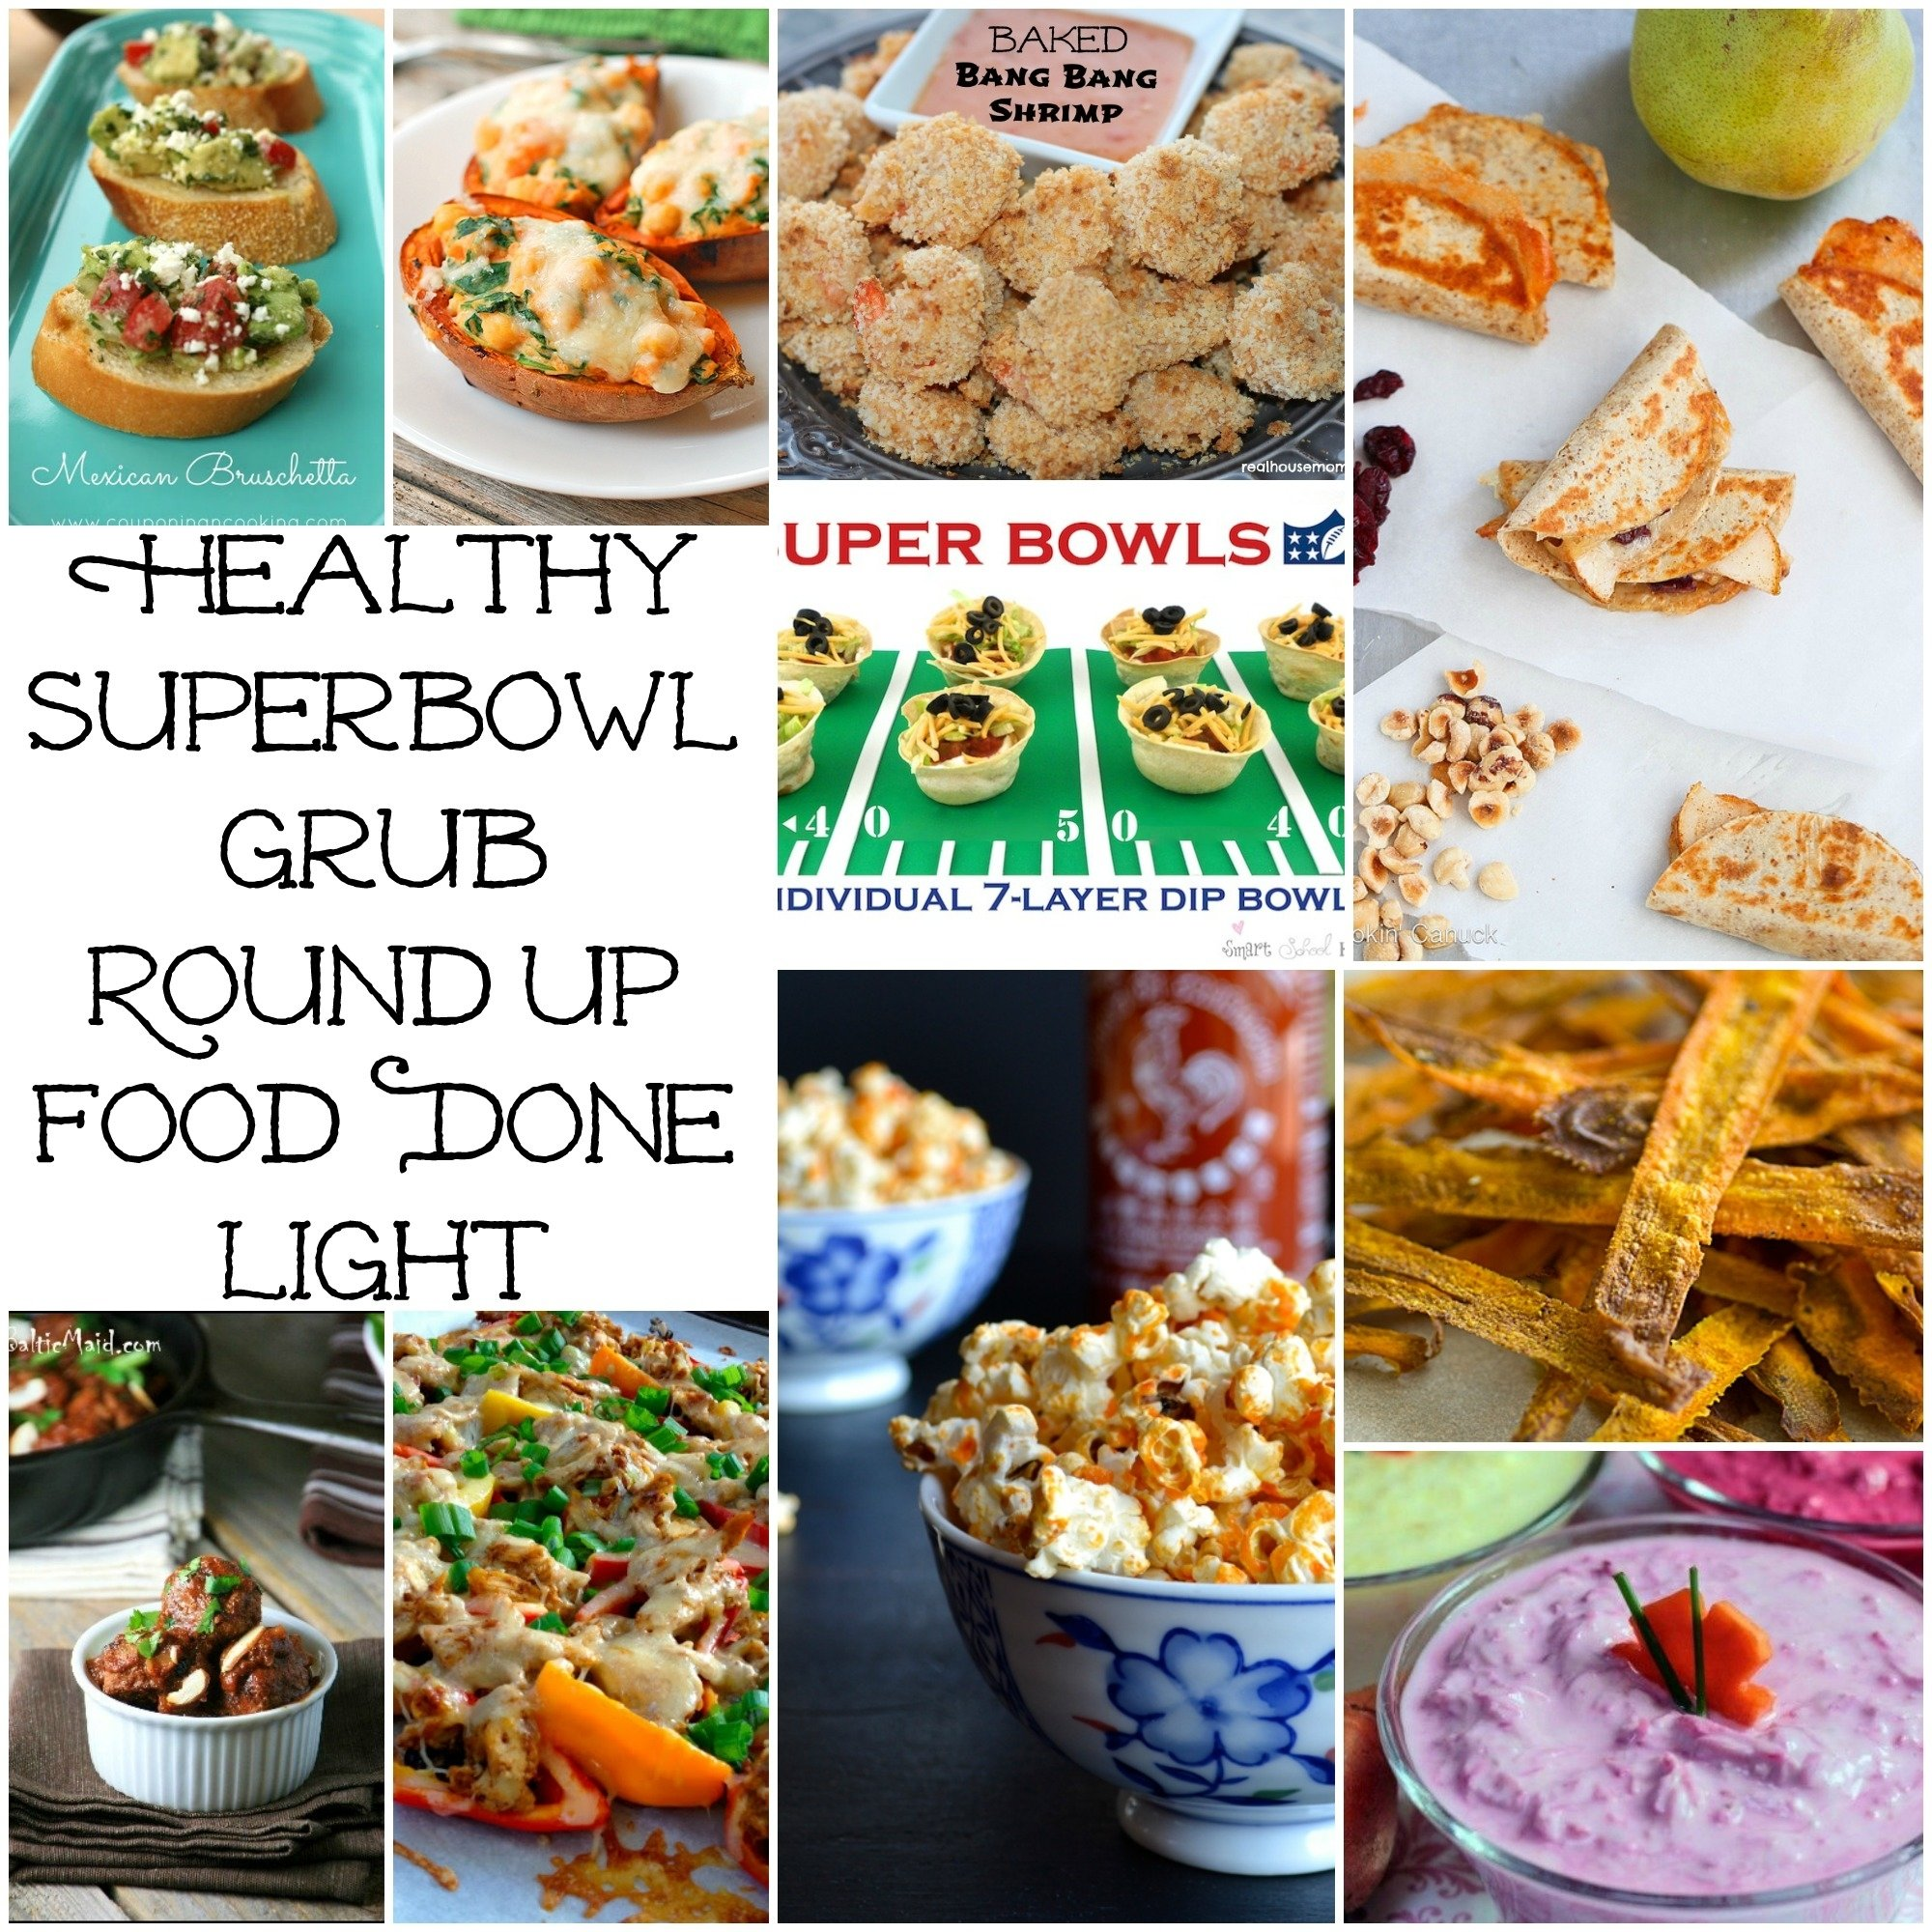 10 Perfect Healthy Super Bowl Party Food Ideas marvellous healthy clean eating super bowl recipes healthy as wells 2020